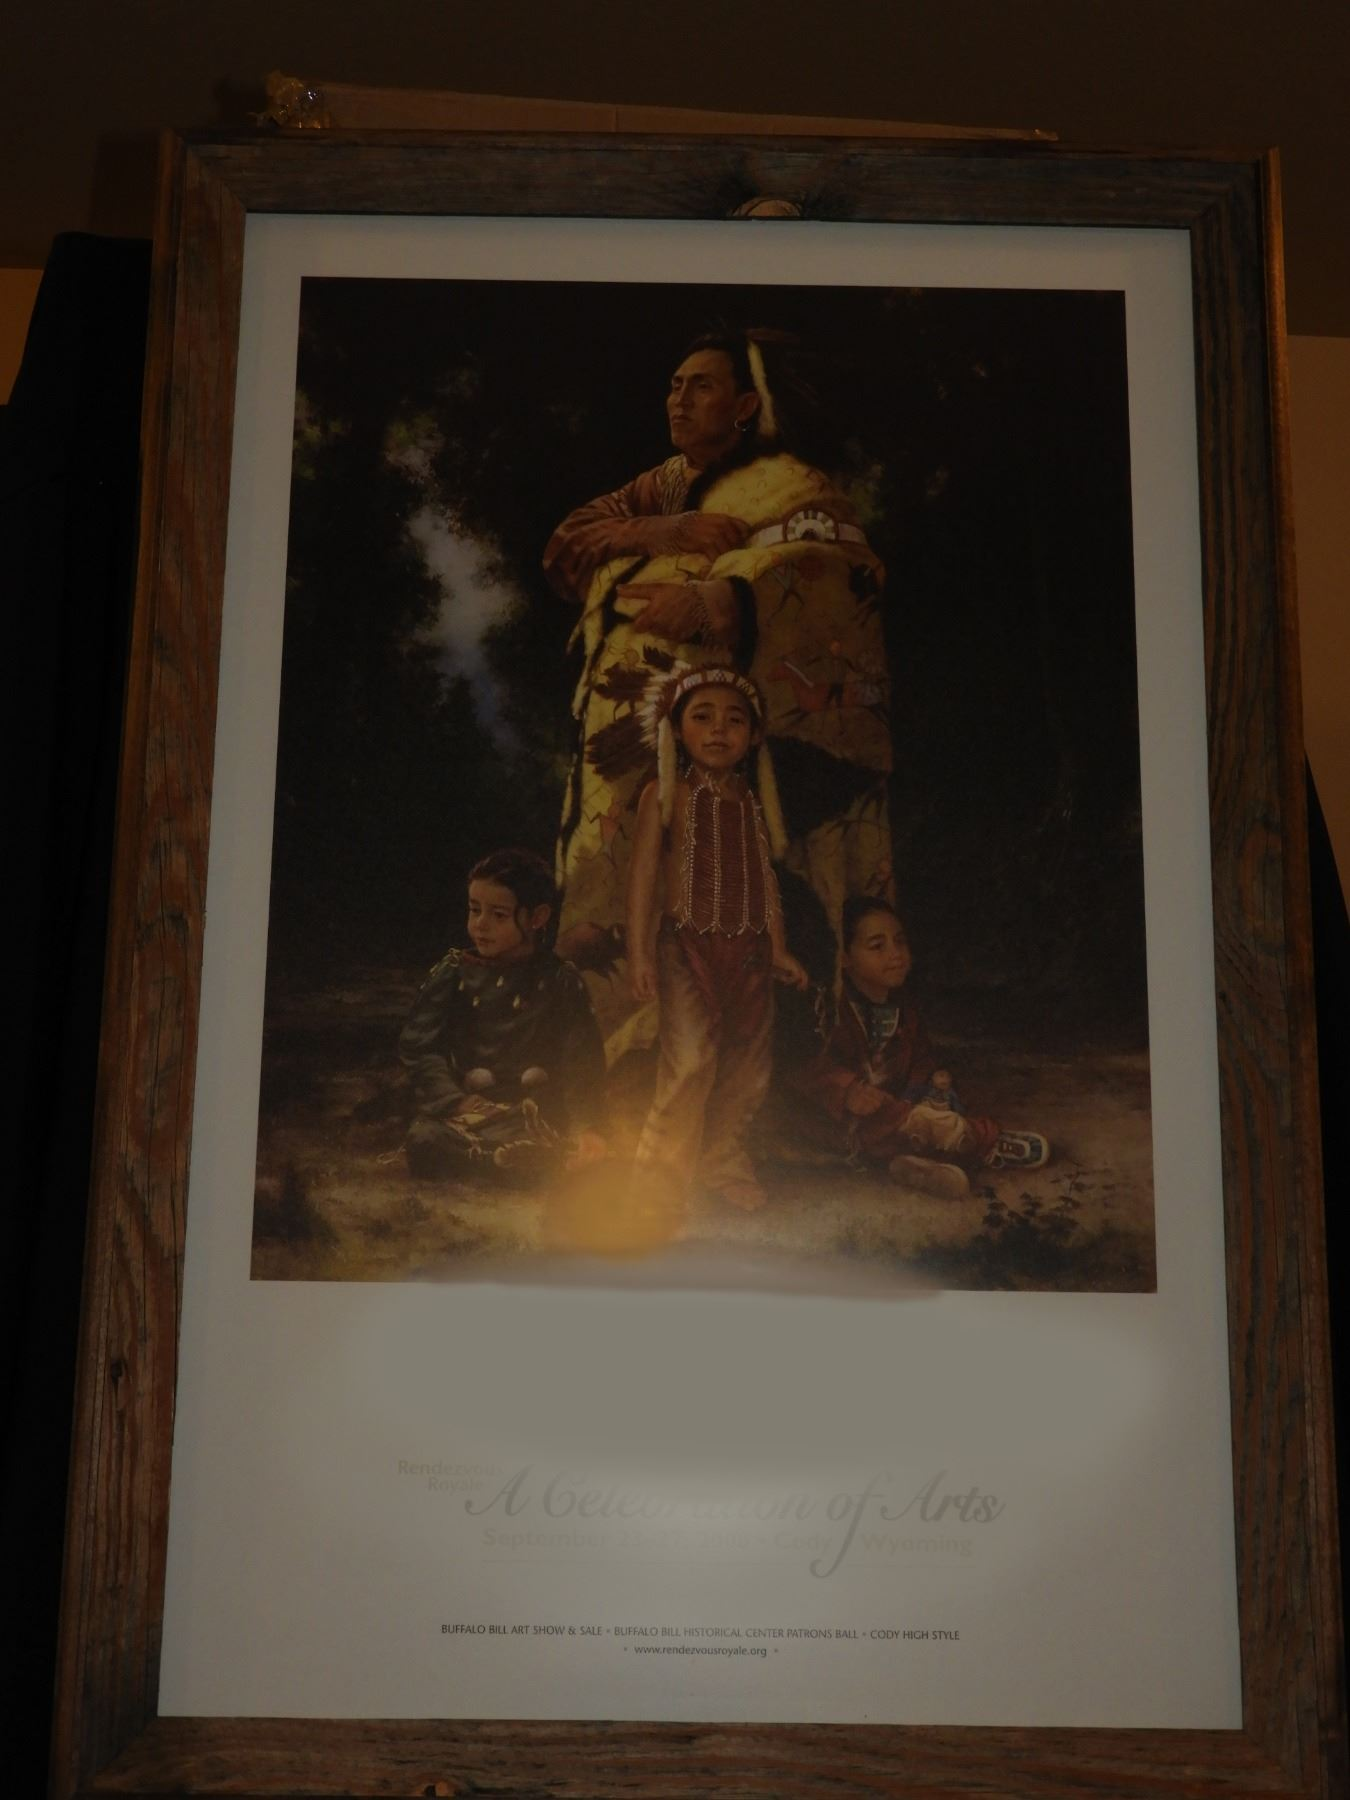 Indian Family   Framed Poster by Mike Poulsen